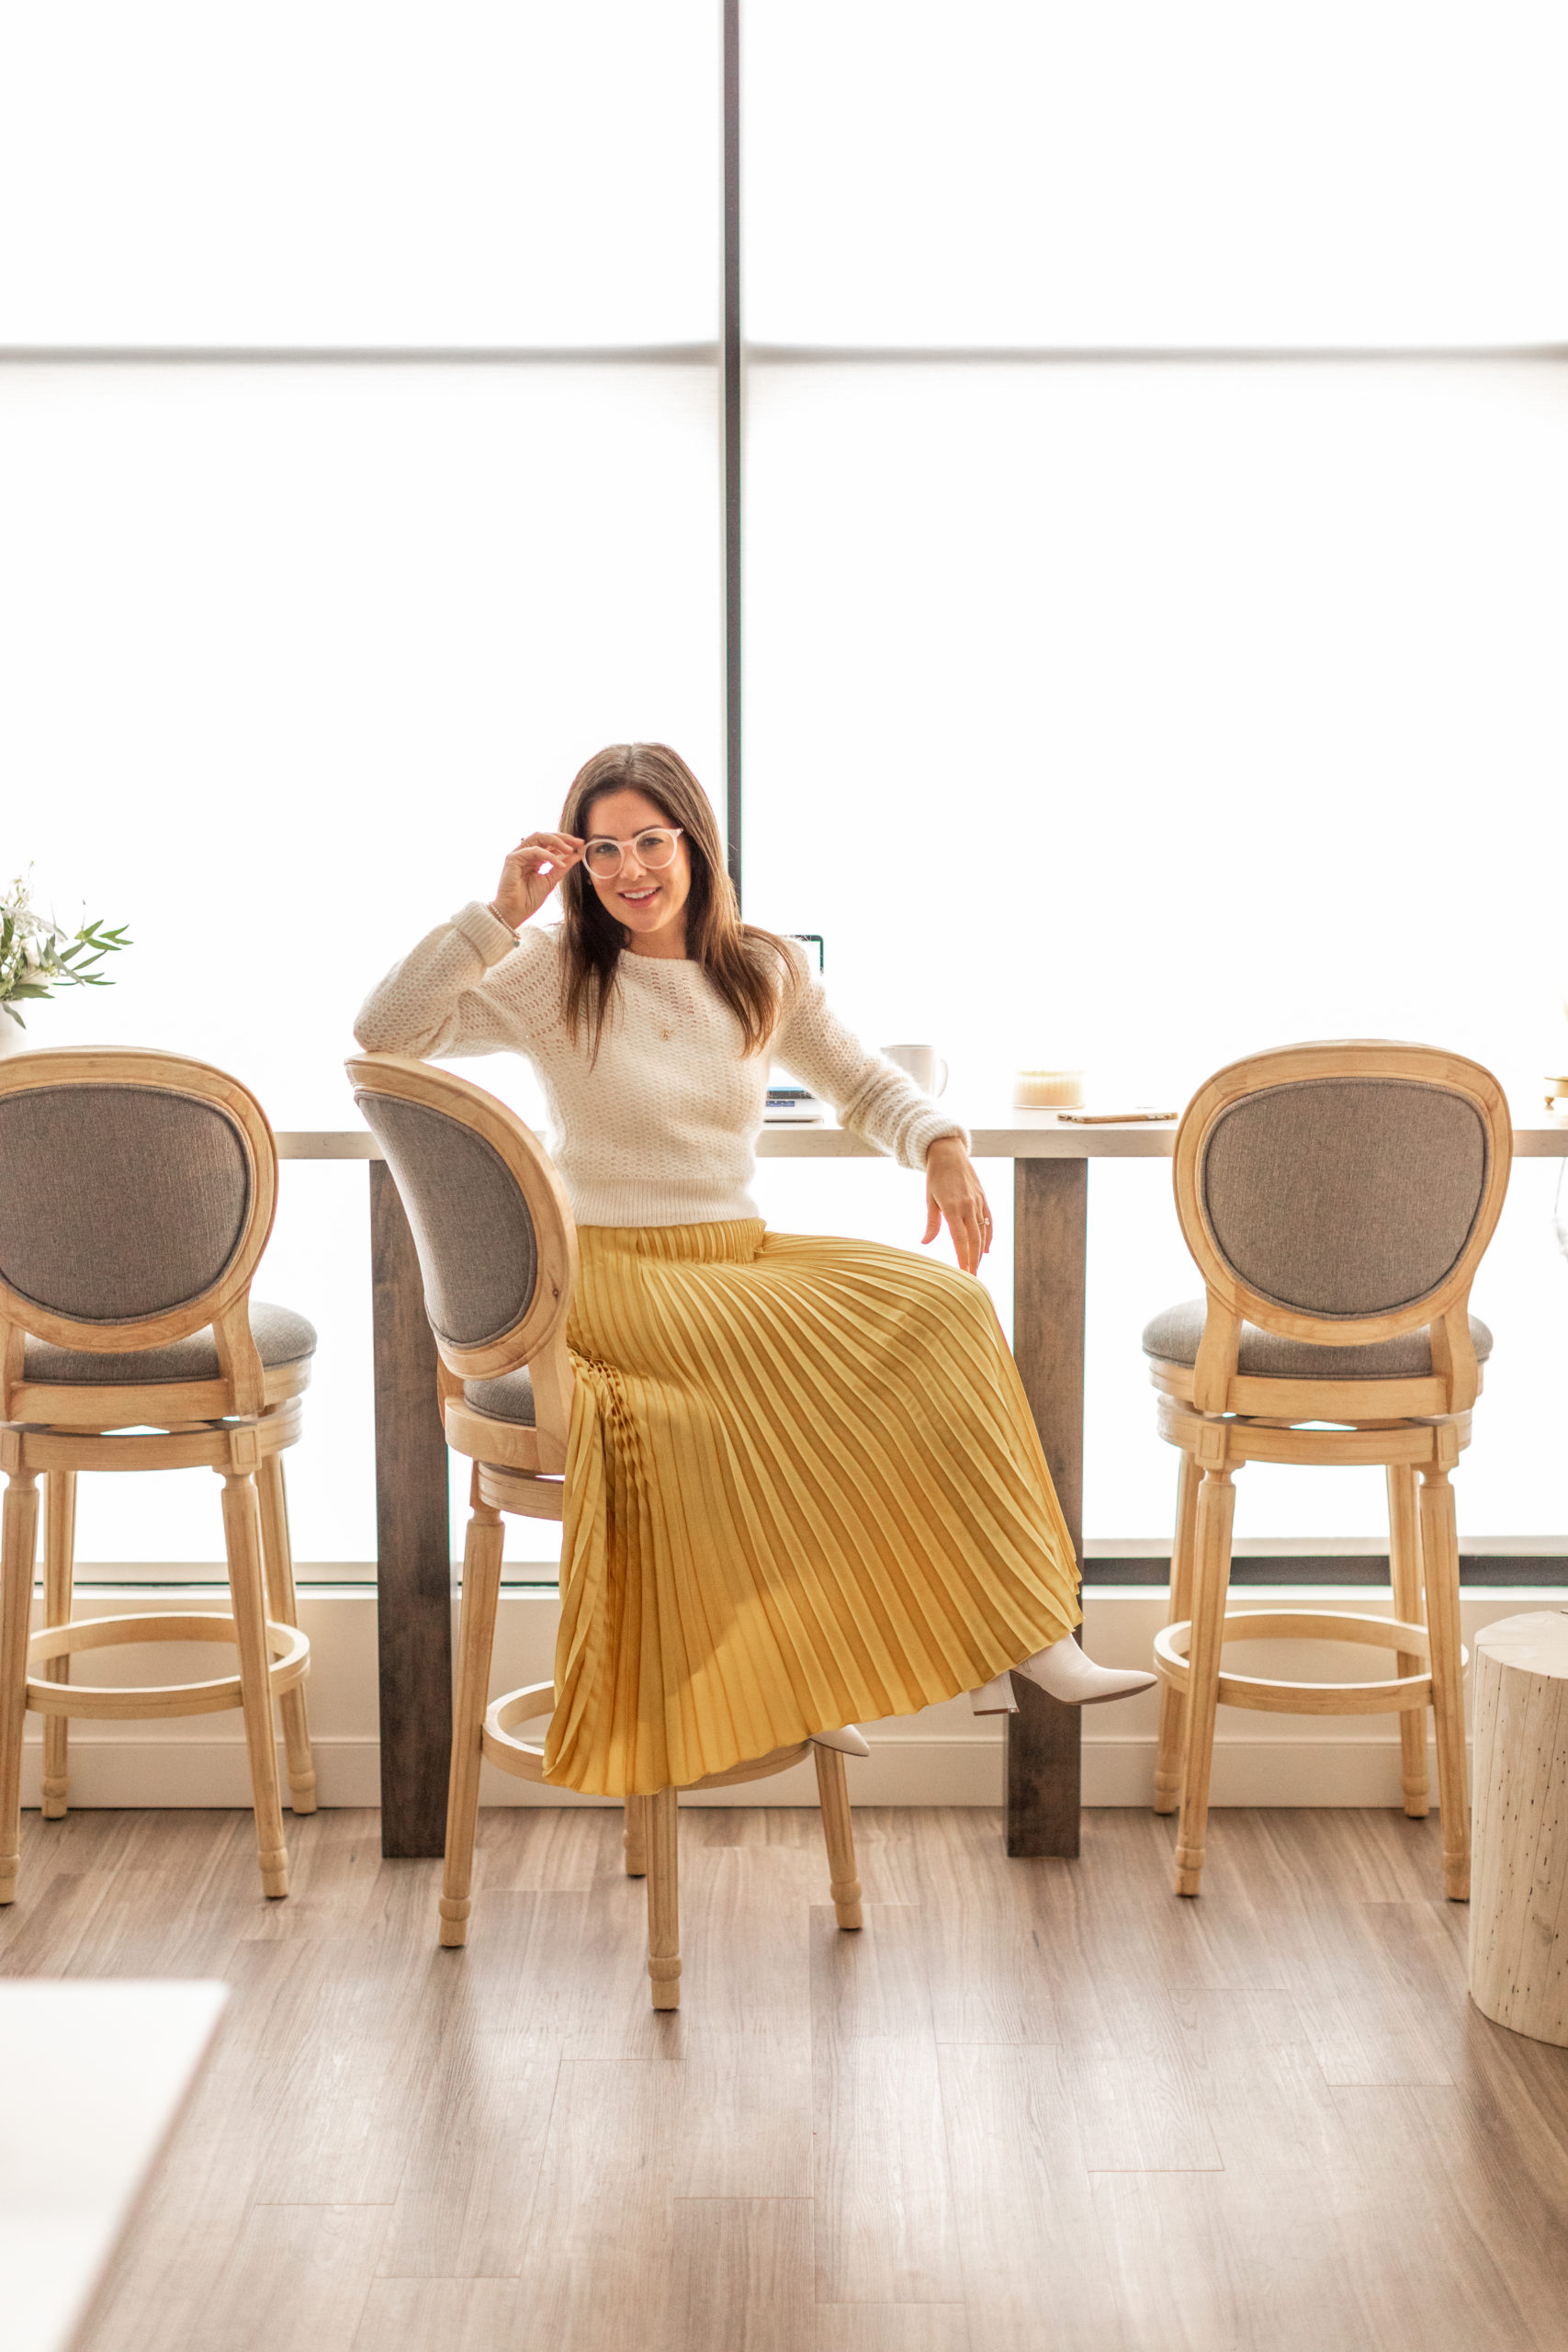 Jillian Harris Reveals New Office Space!